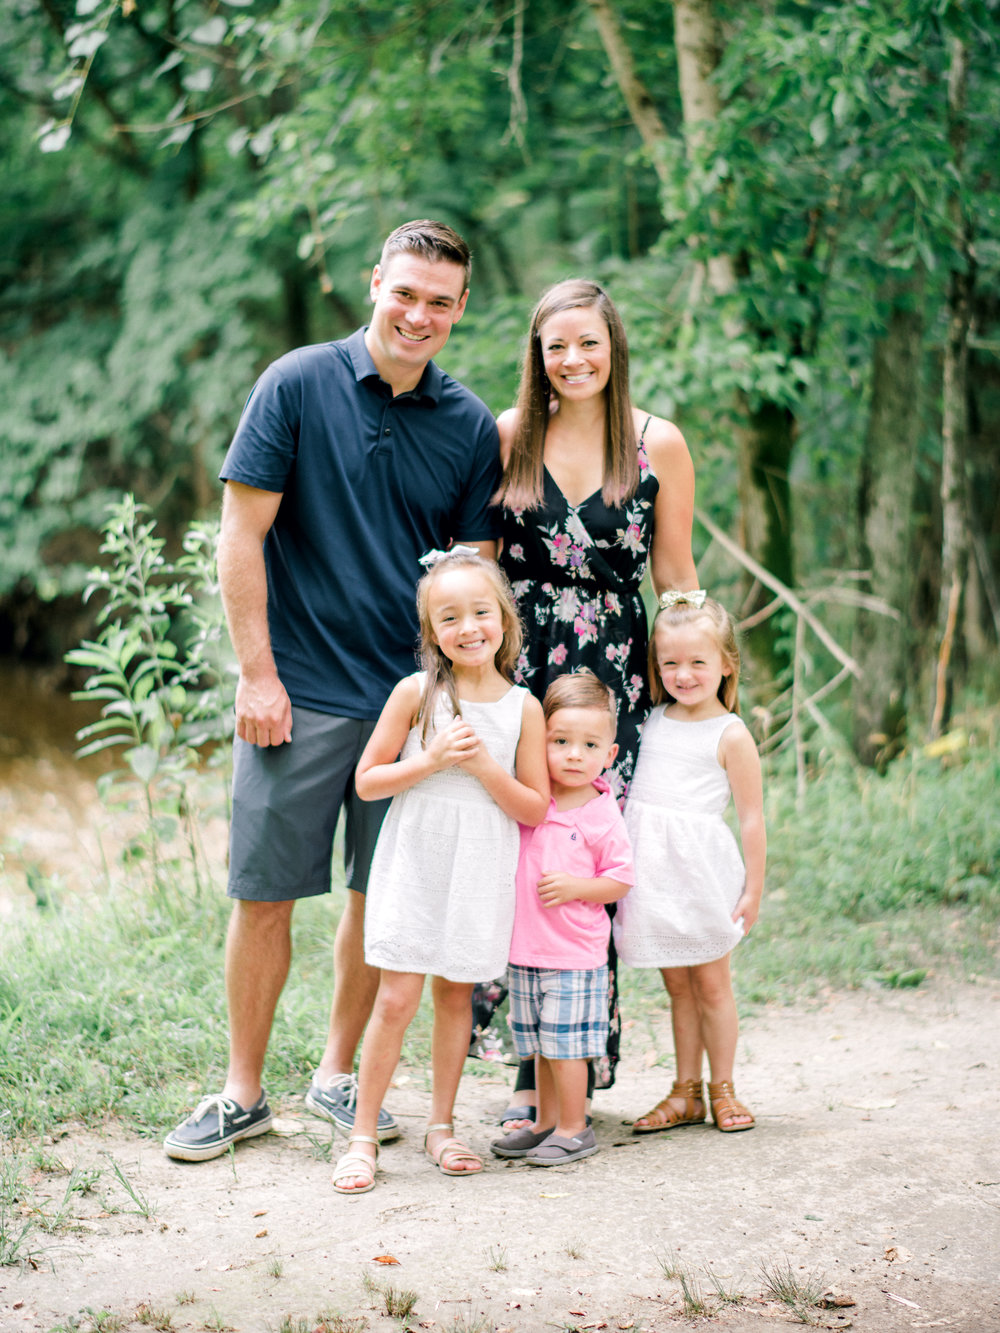 JacobsFamily (4 of 99).JPG